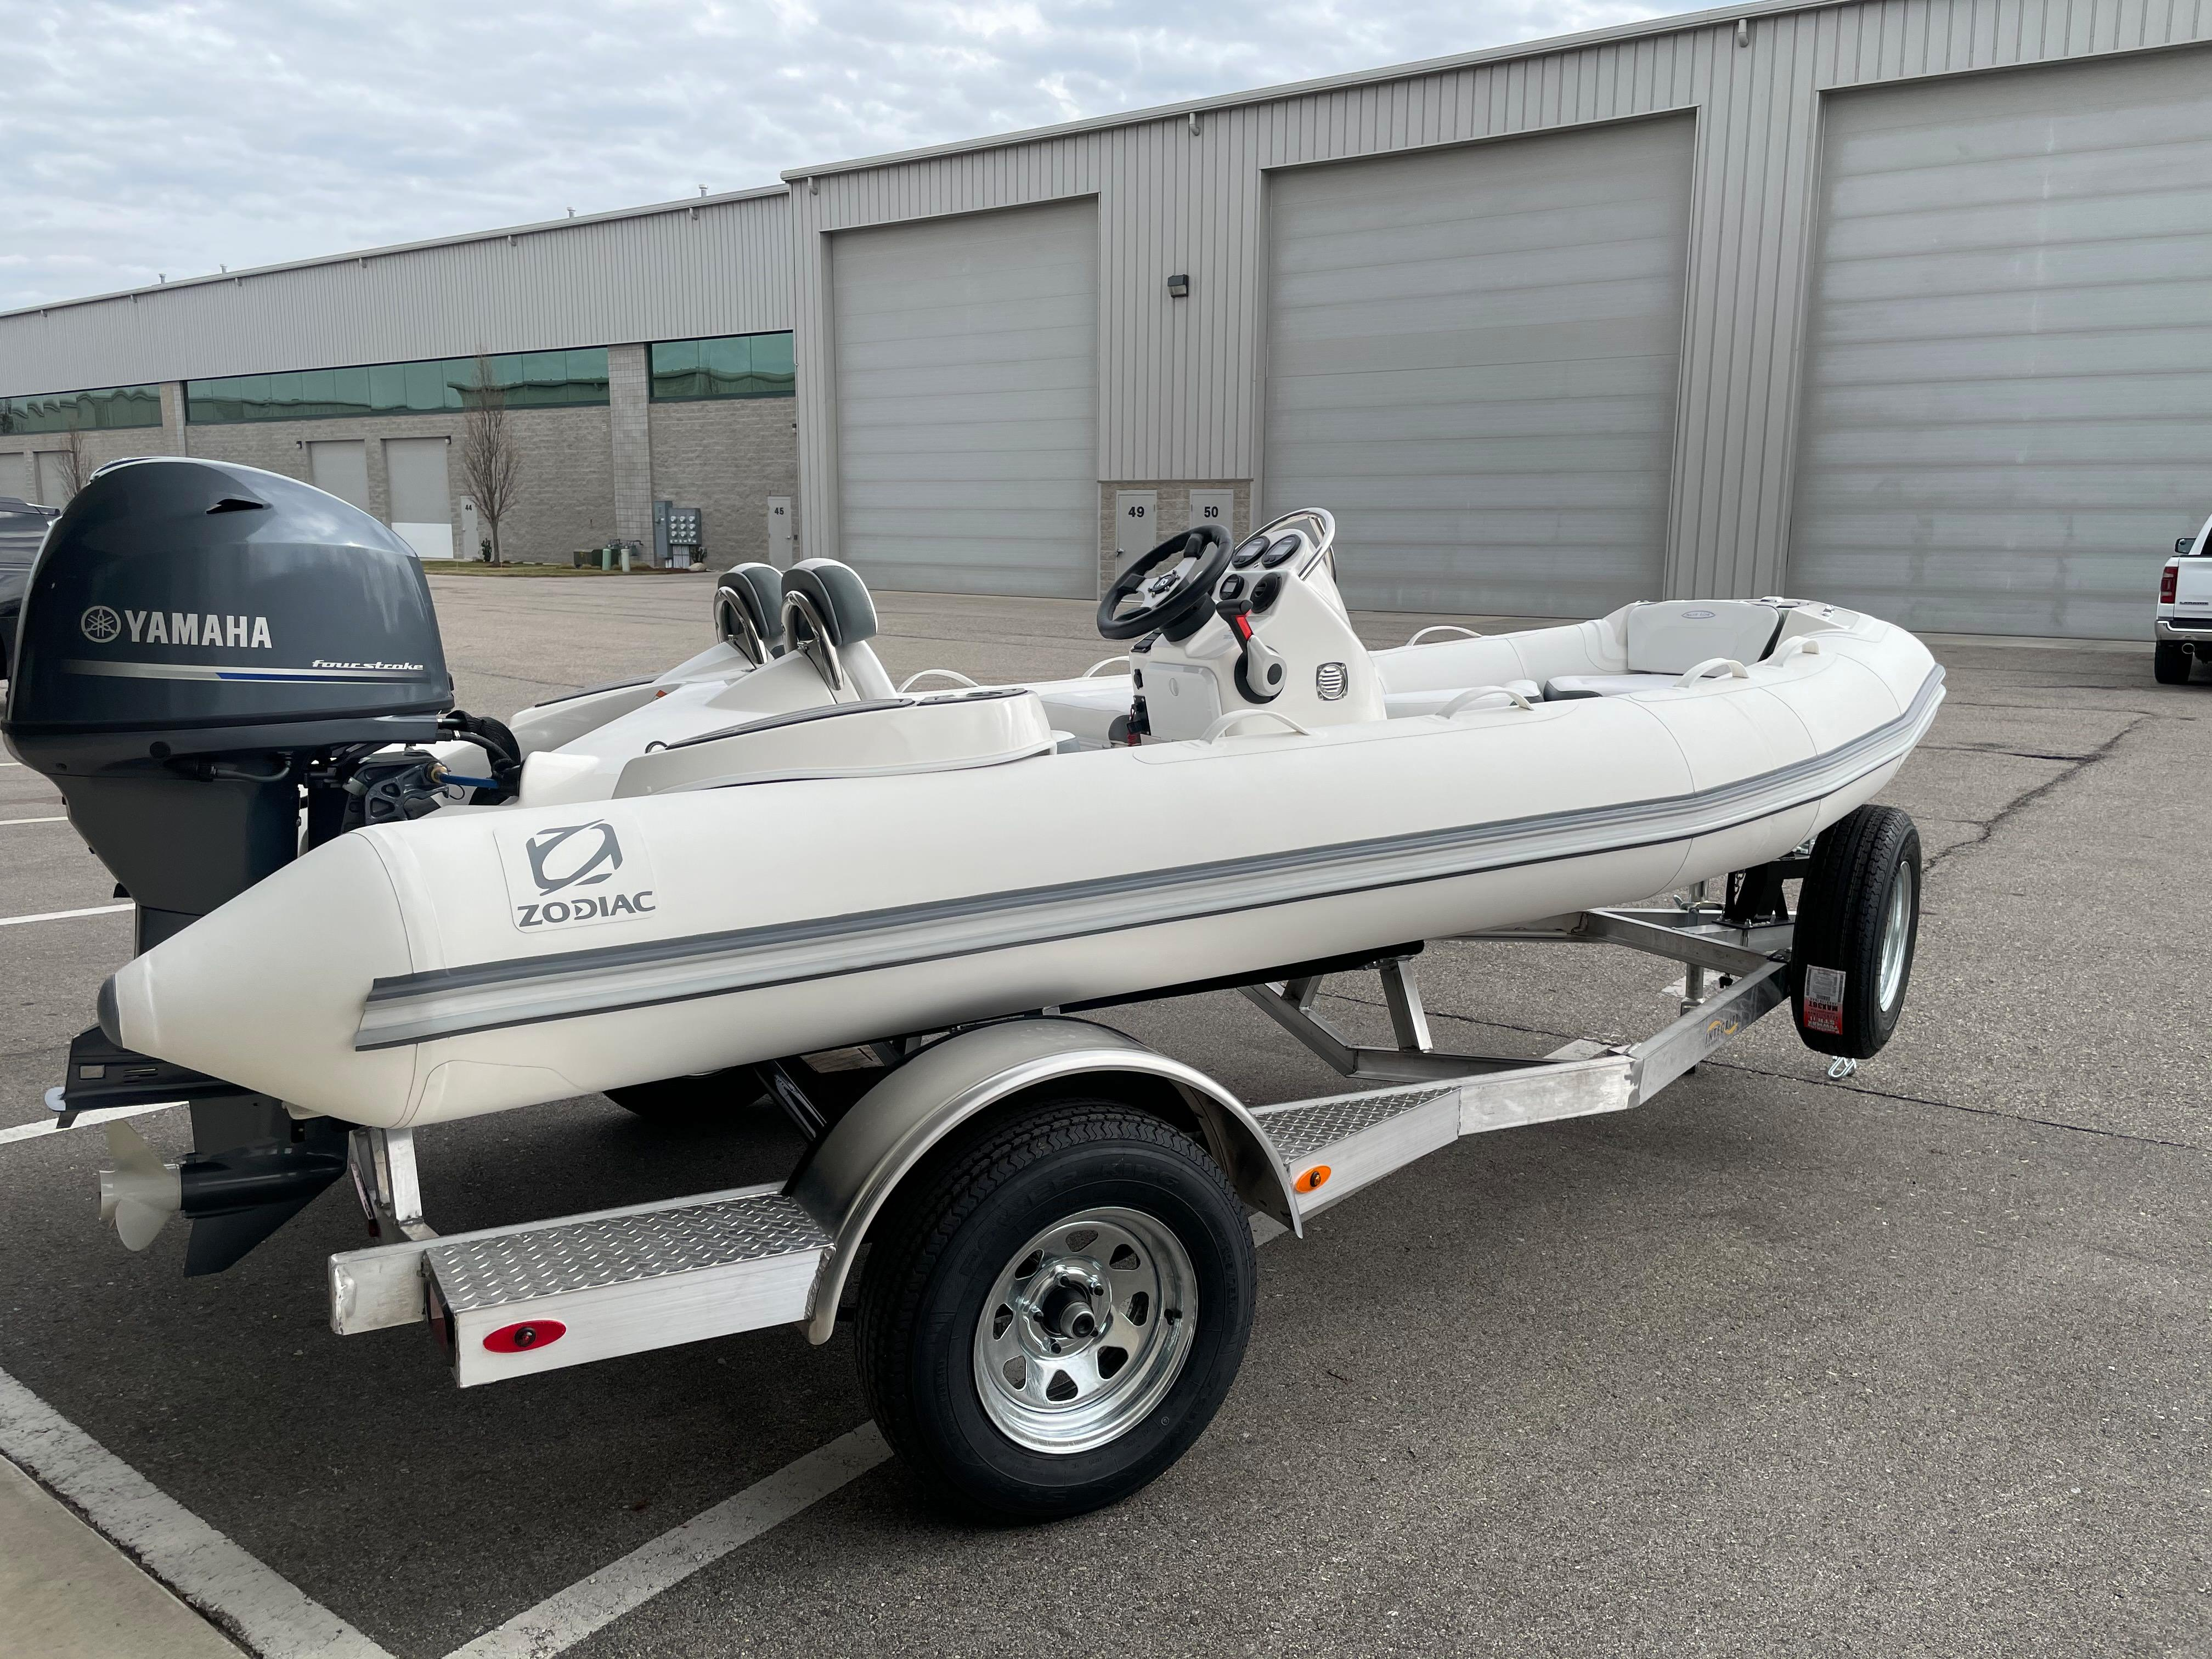 2022 Zodiac Yachtline 440 Deluxe NEO GL Edition 60hp On Order, Image 2